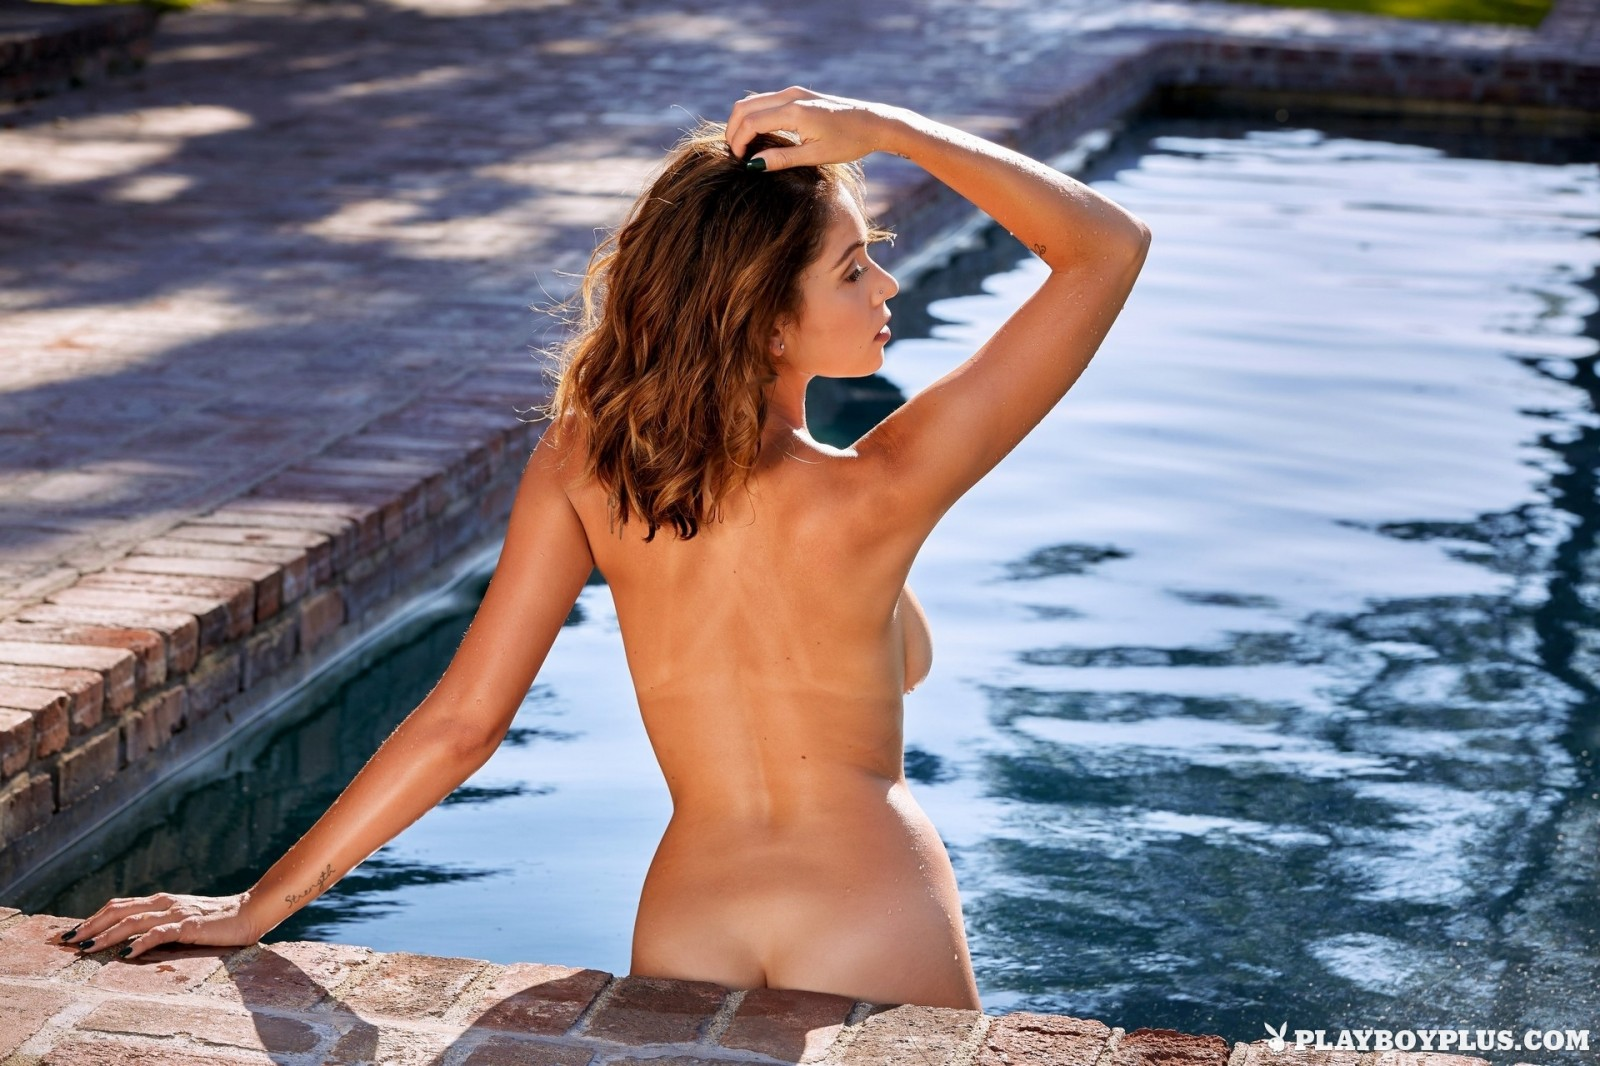 Ali Rose in Busty Latina MILF by the pool - Playboy Plus - Pure Nude ...